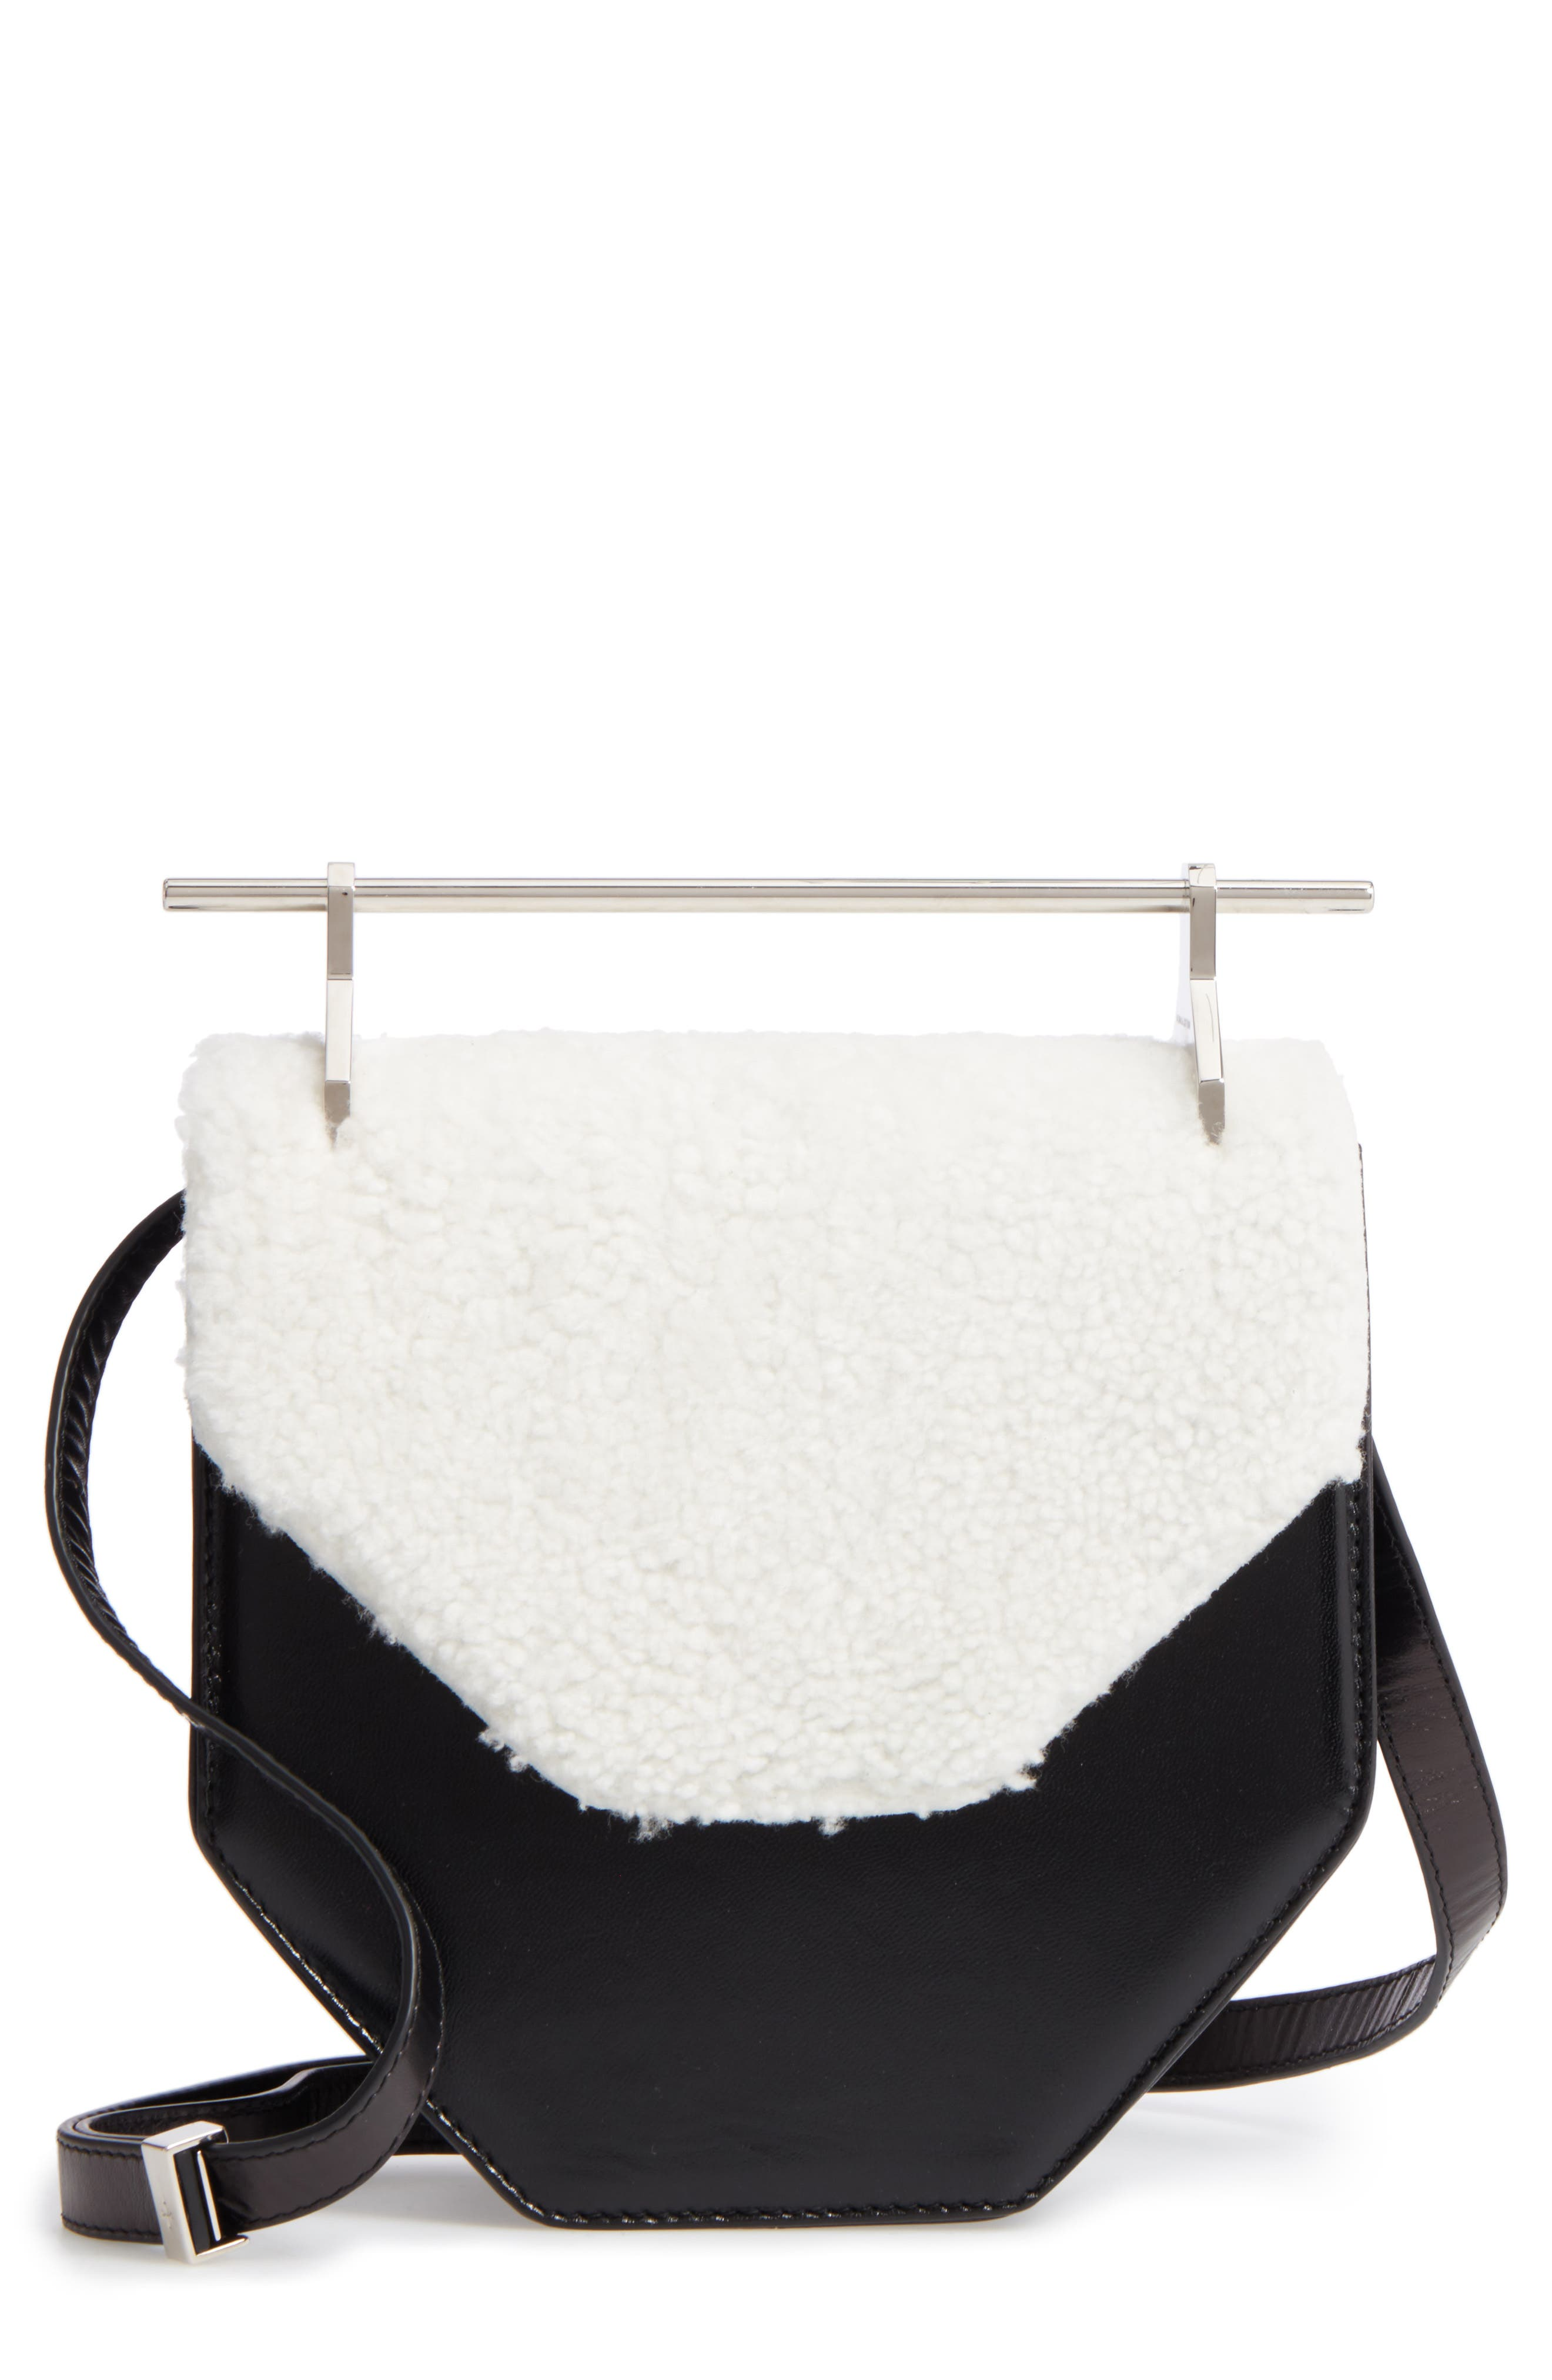 Amor Fati Leather & Genuine Shearling Shoulder Bag,                         Main,                         color, Black/ White/ Silver